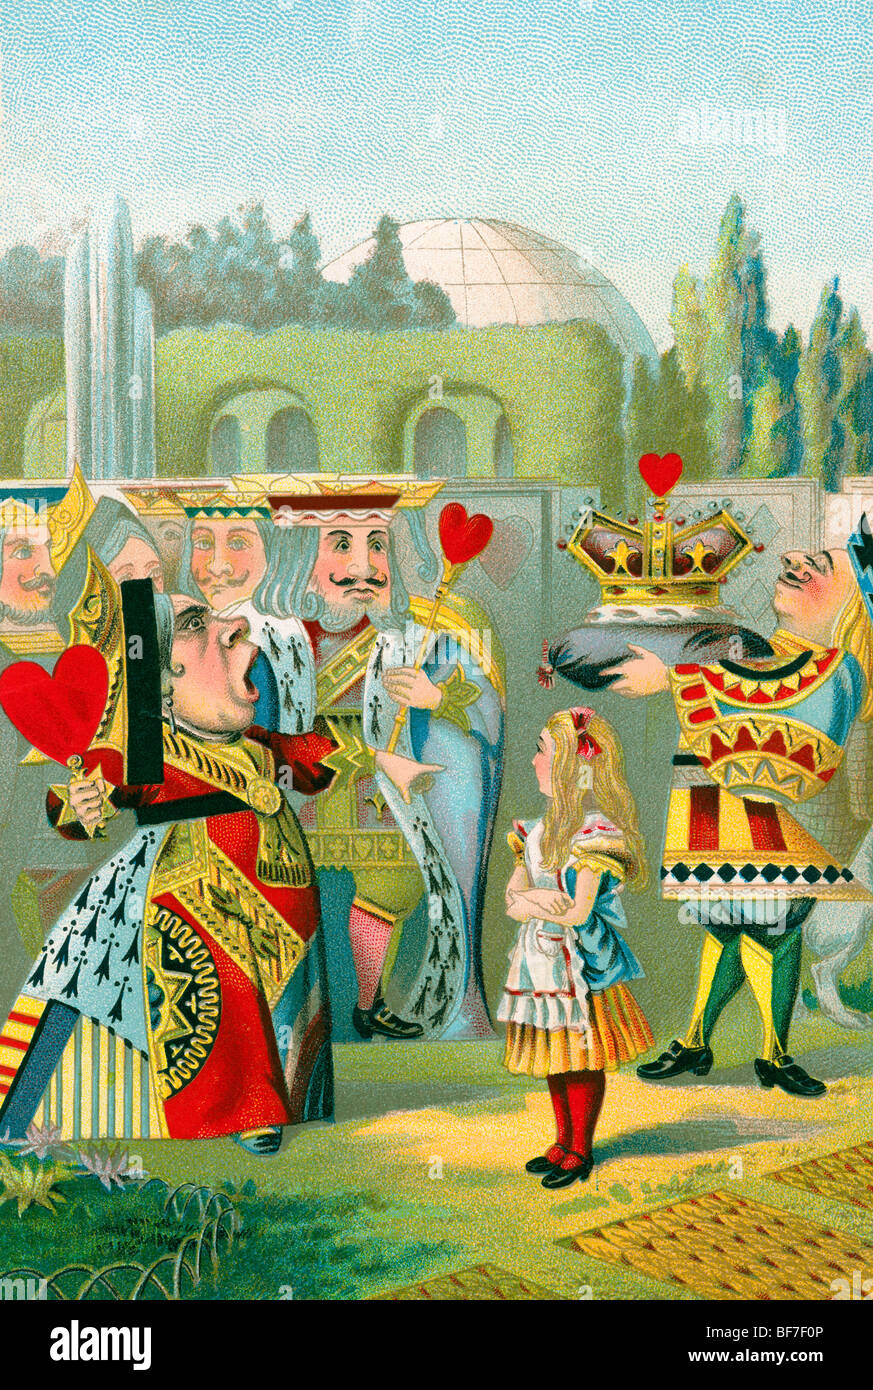 Turn of the century Chromolithograph of Alice in Wonderland with the Queen of Hearts - Stock Image